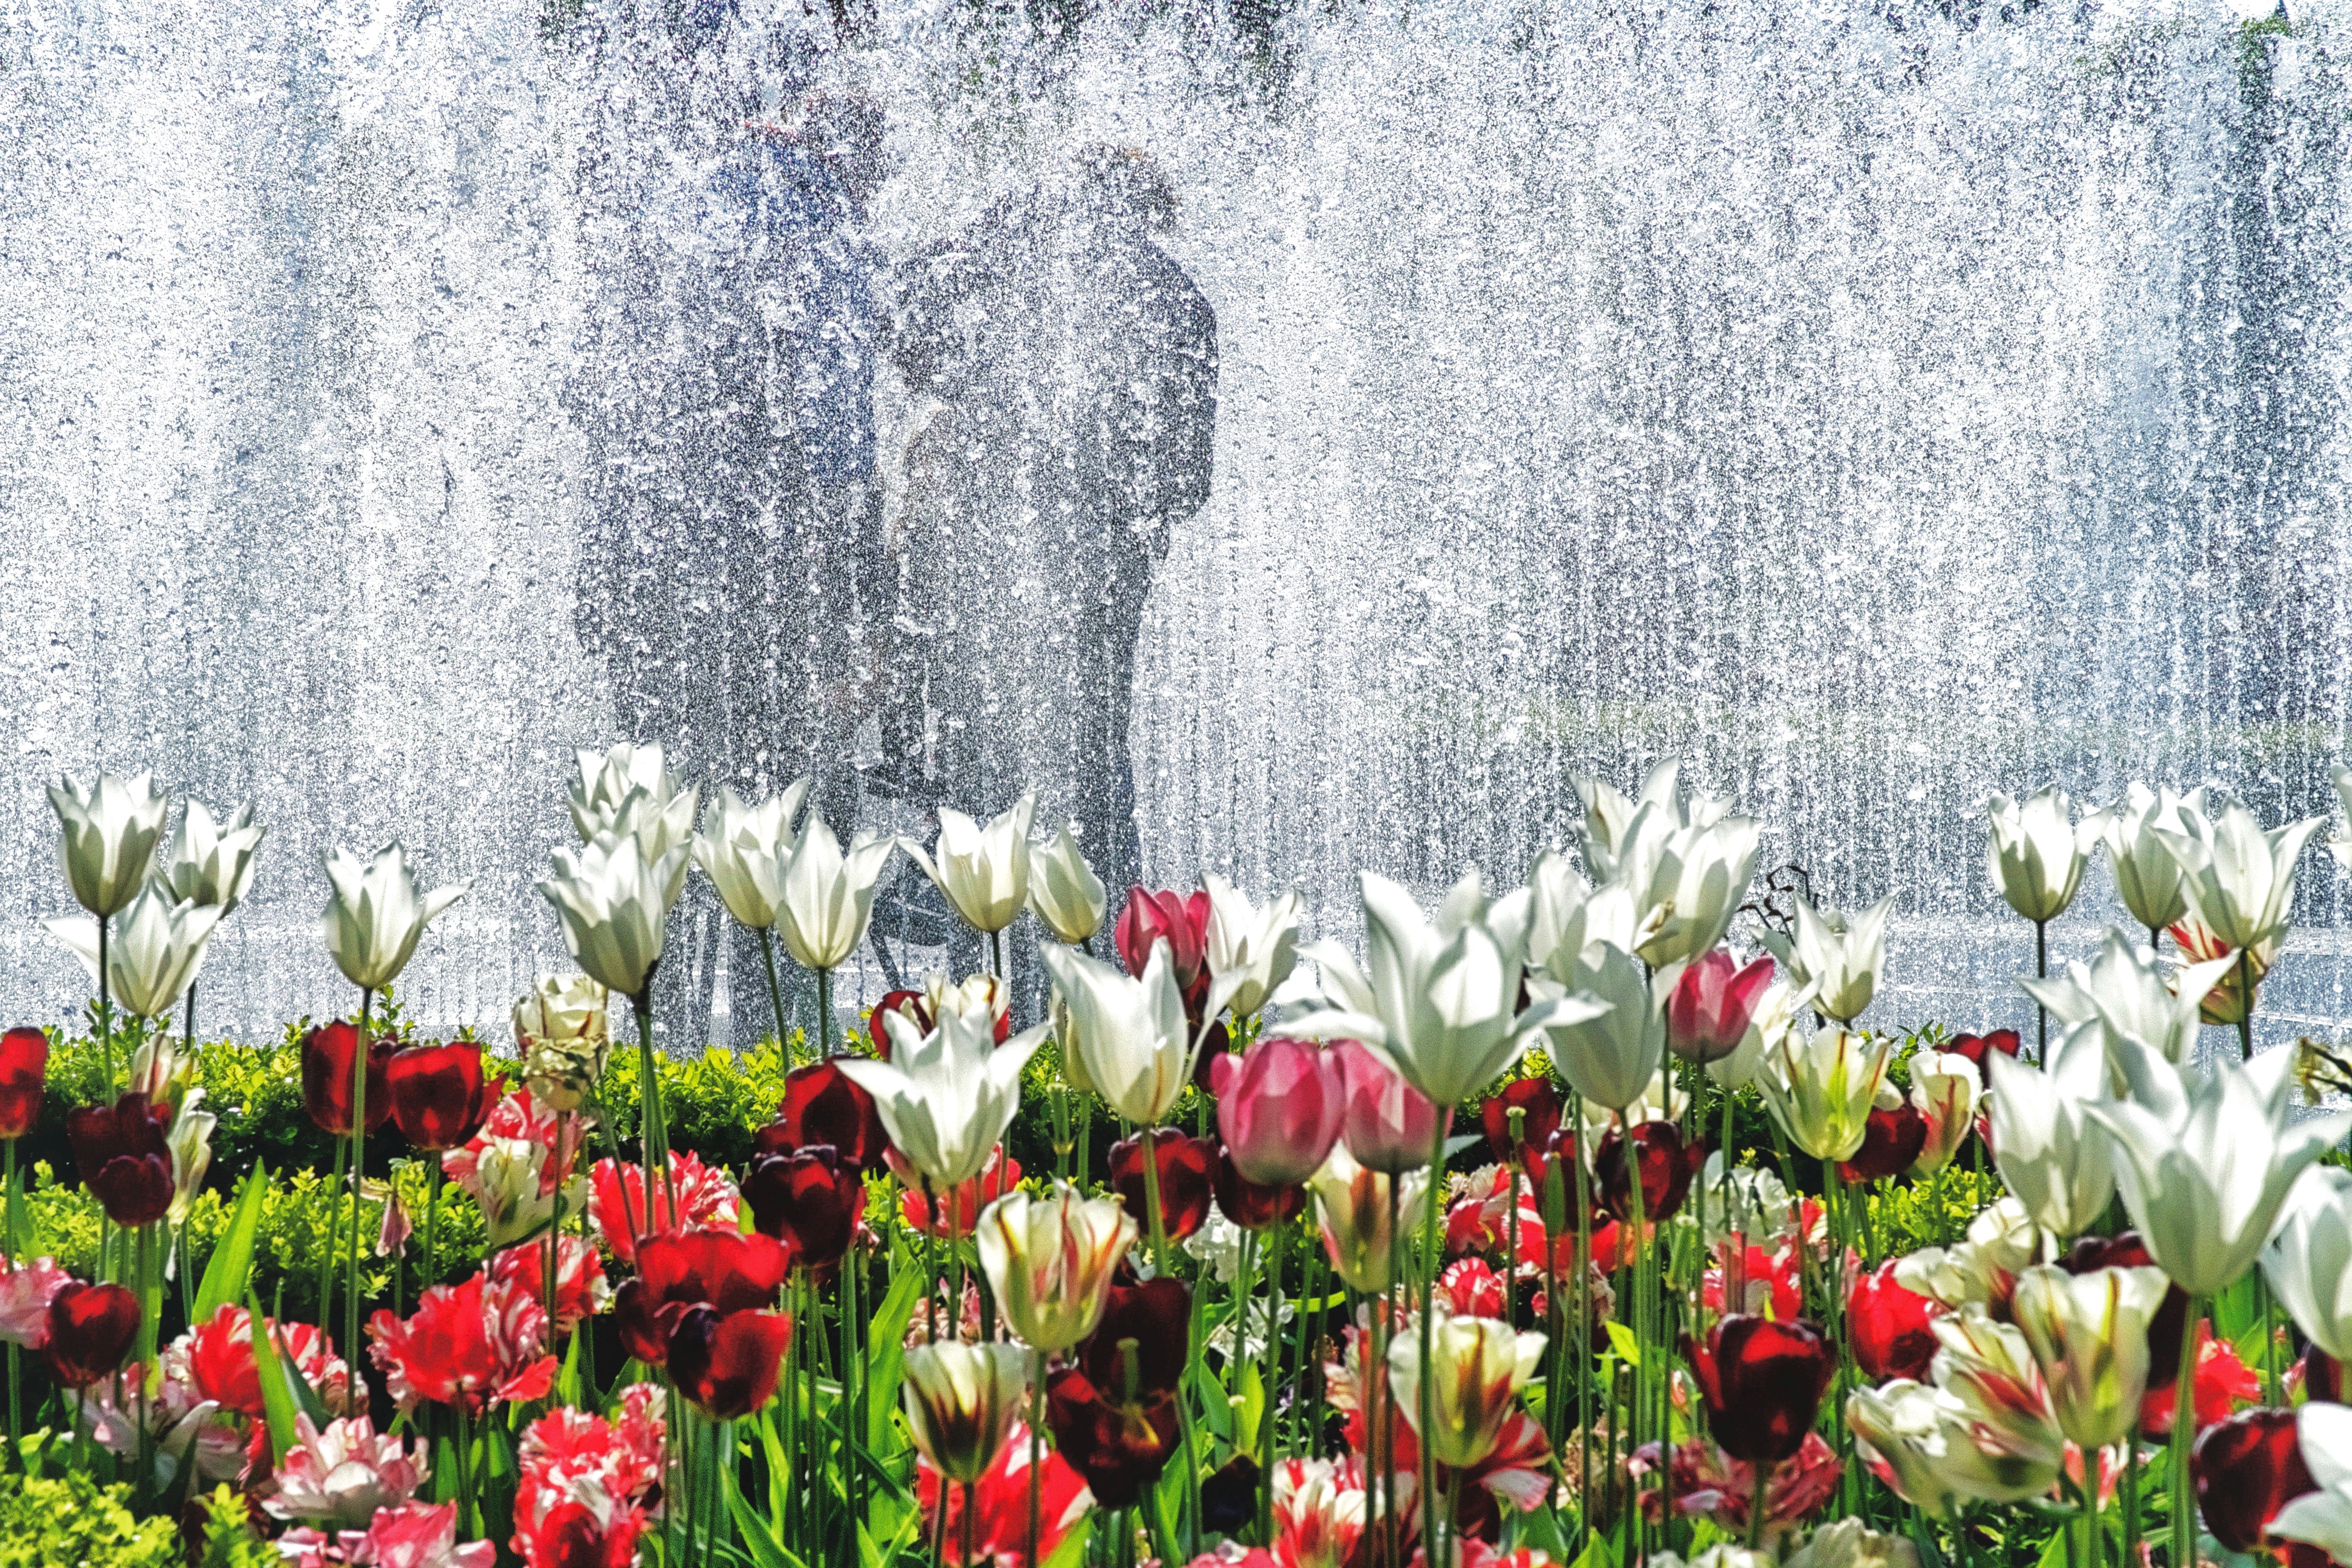 Fountain and Flowers, Amsterdam